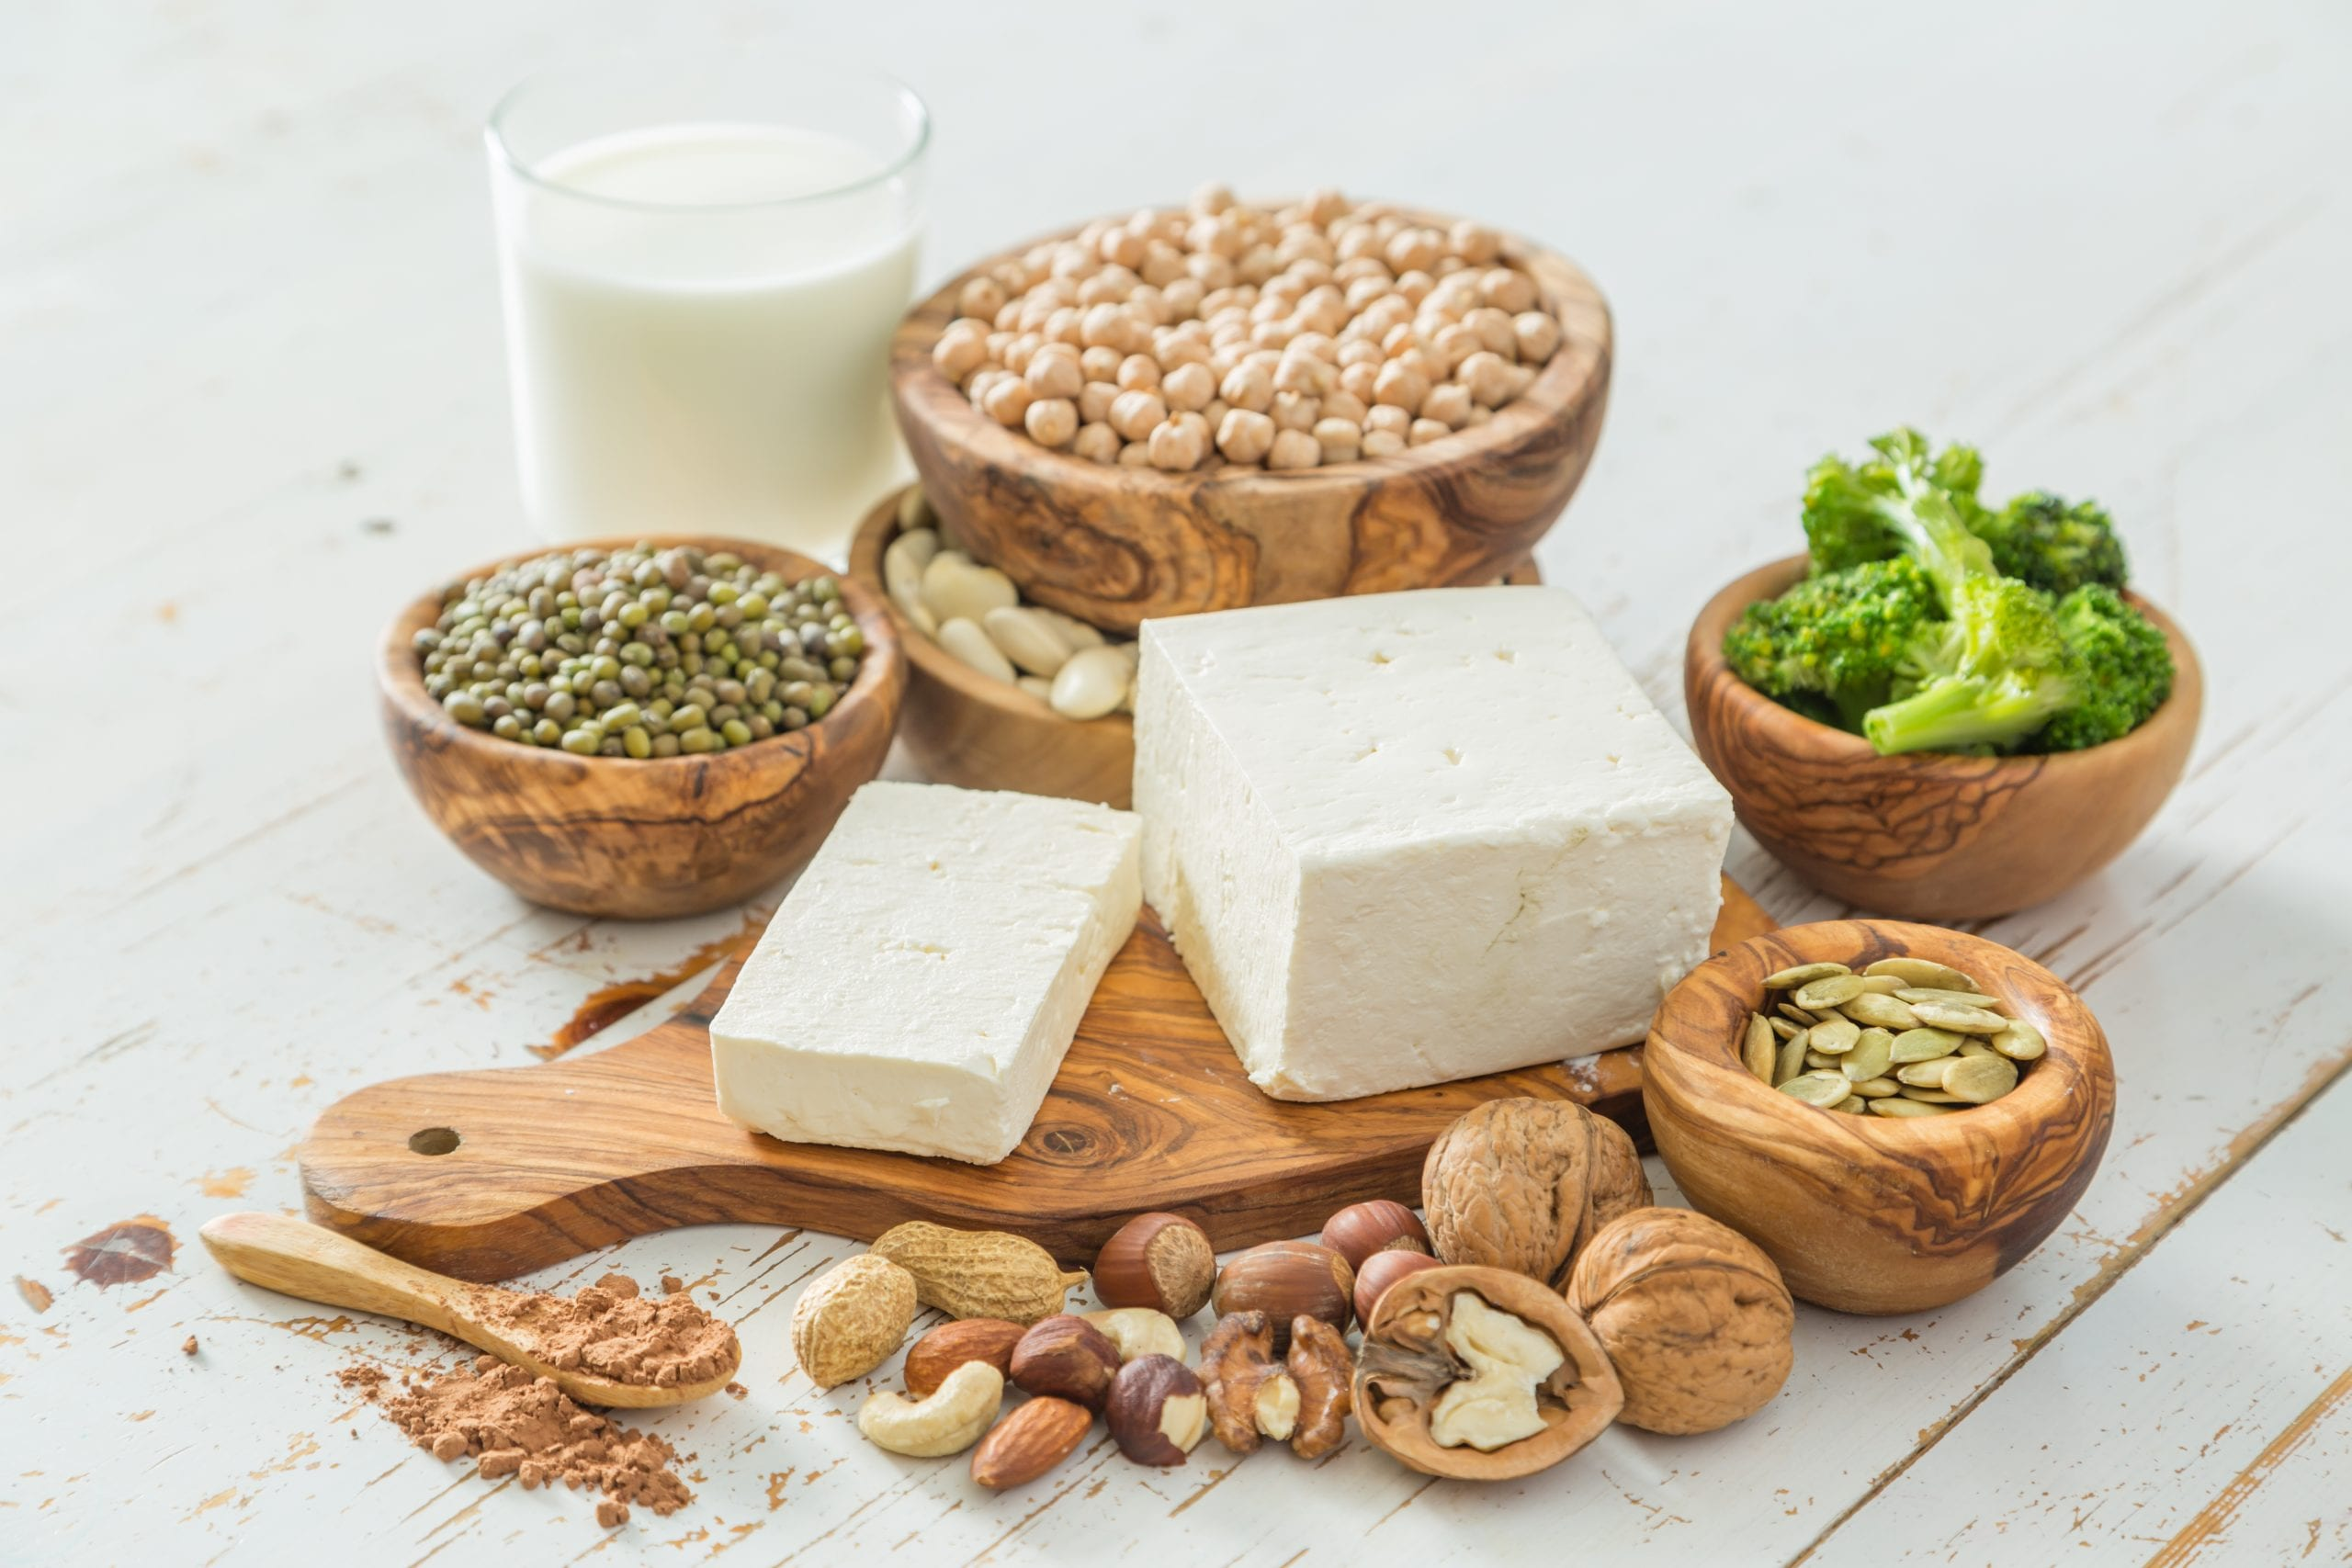 veganuary protein options